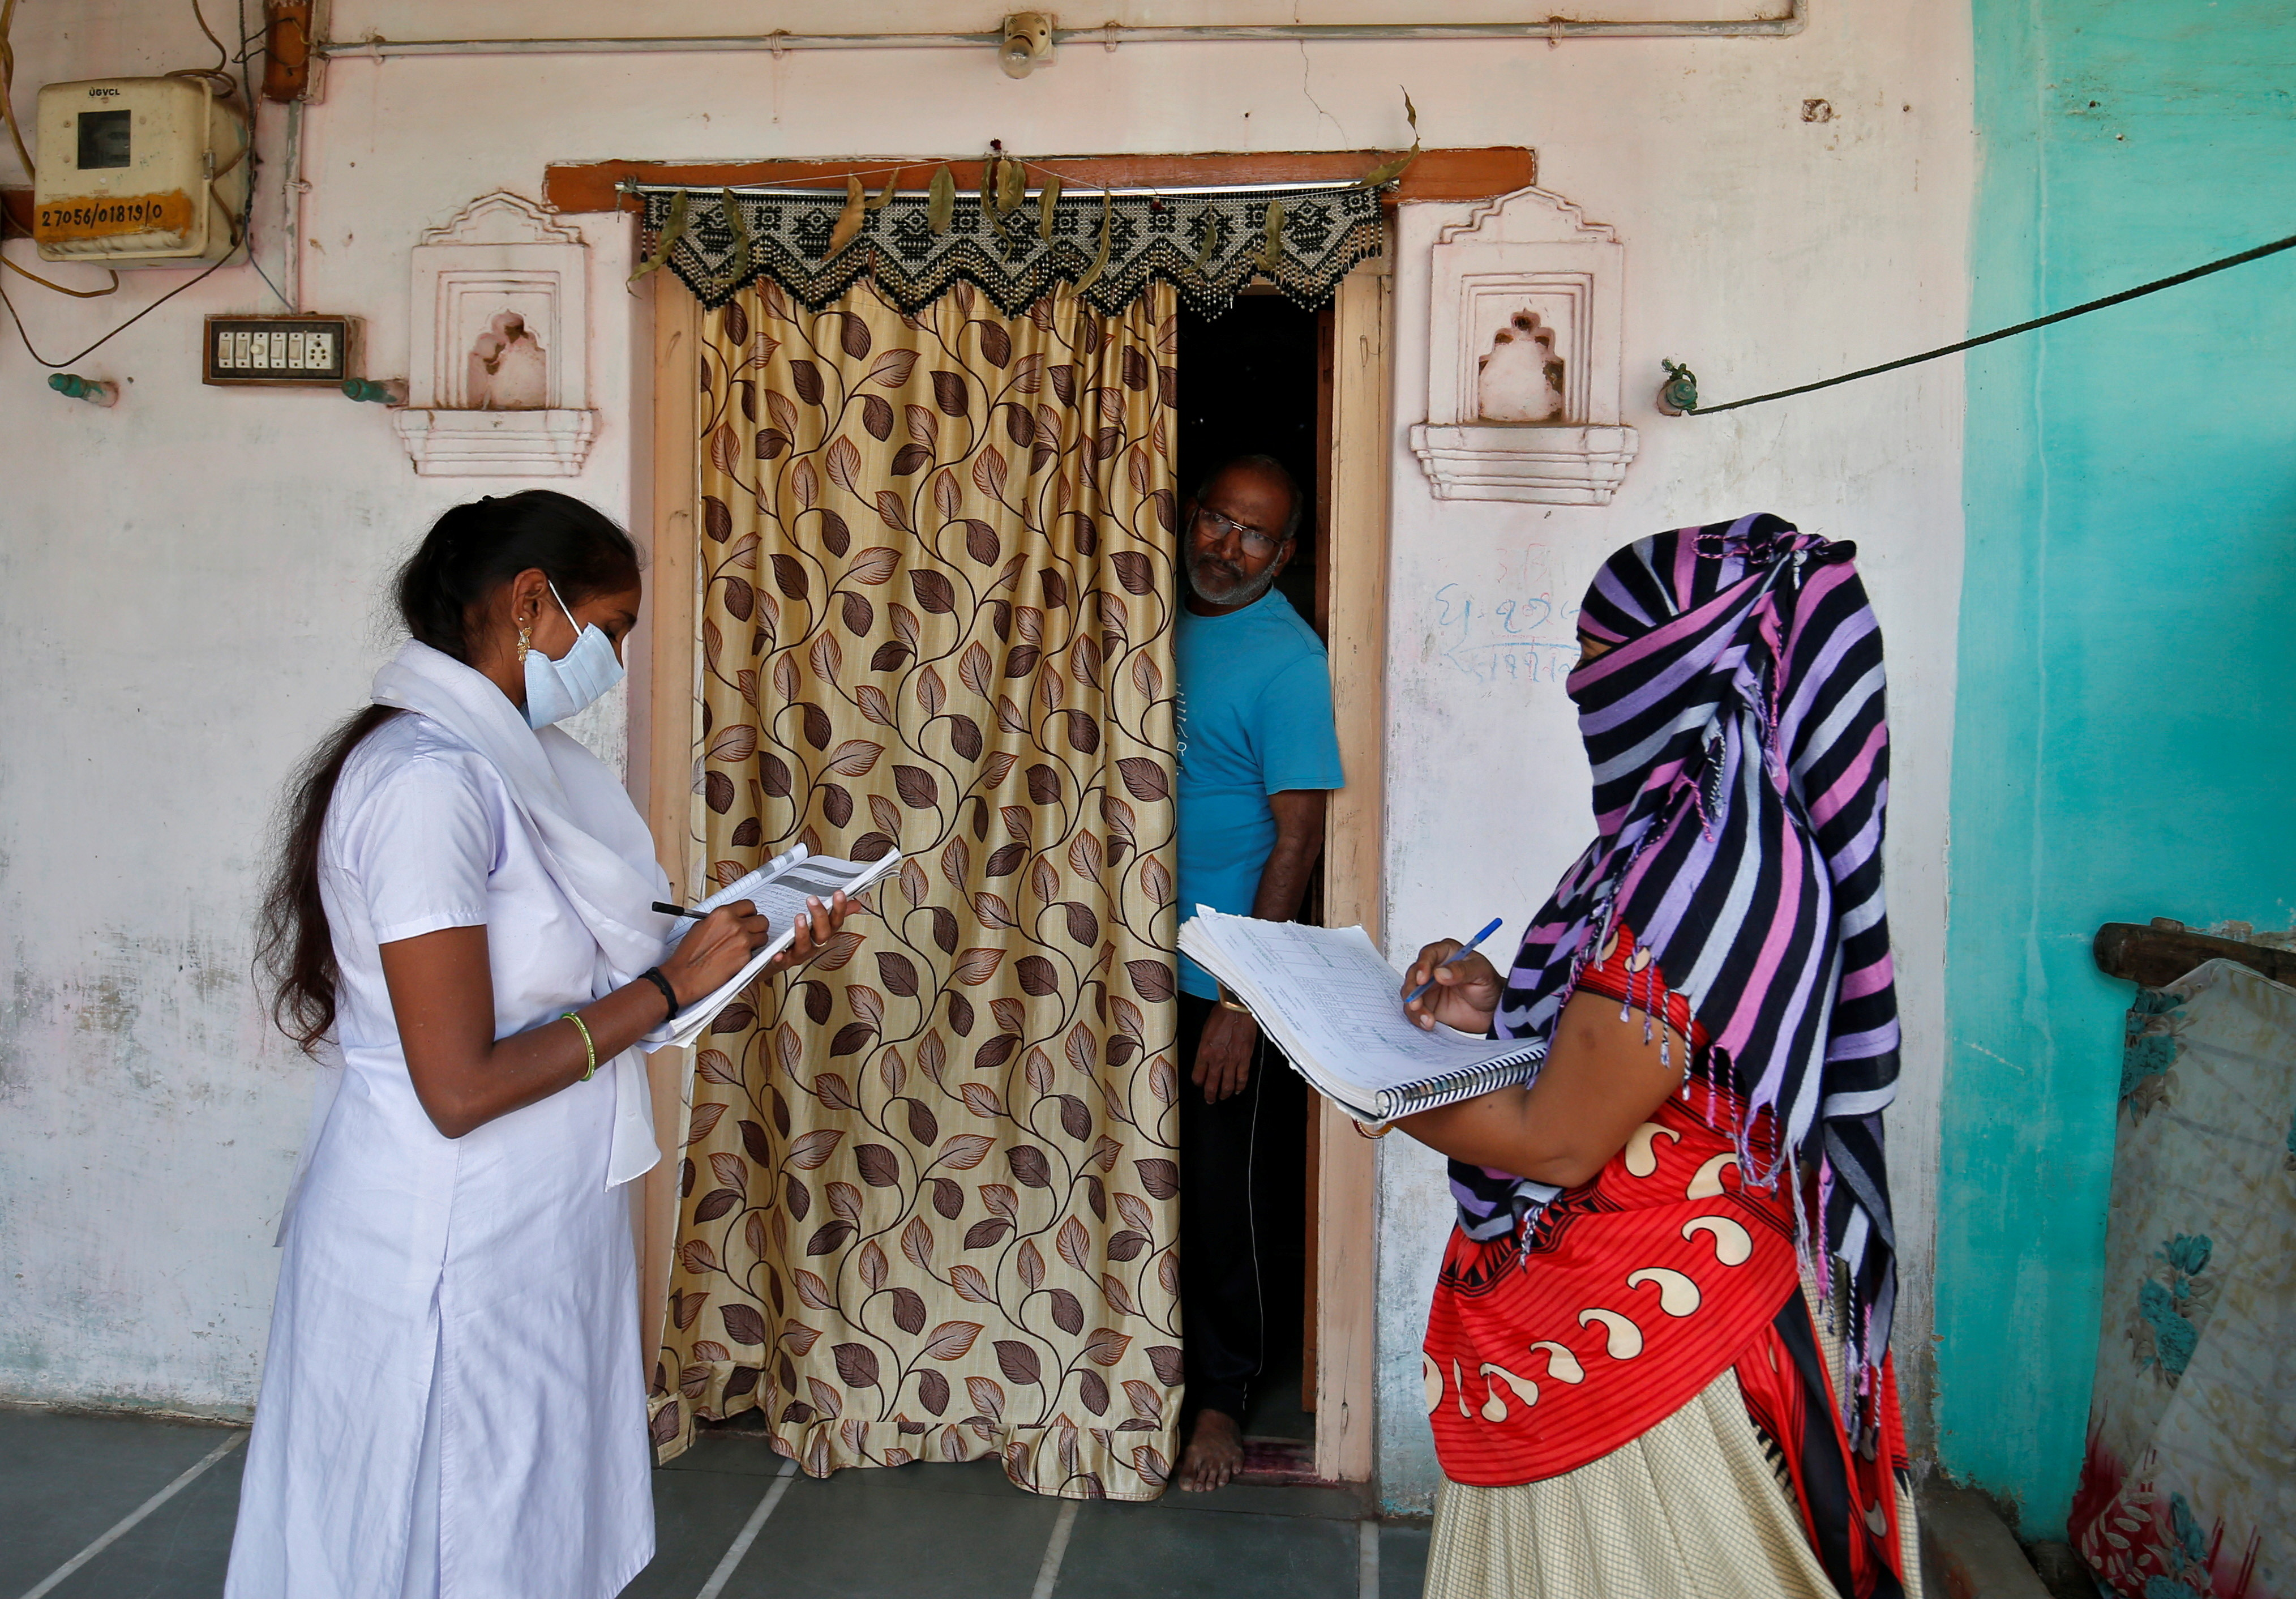 Health workers collect personal data from a man as they prepare a list during a door-to-door survey for the first shot of COVID-19 vaccine for people above 50 years of age and those with comorbidities, in a village on the outskirts of Ahmedabad, India, December 14, 2020. REUTERS/Amit Dave - RC21NK9S3WNP